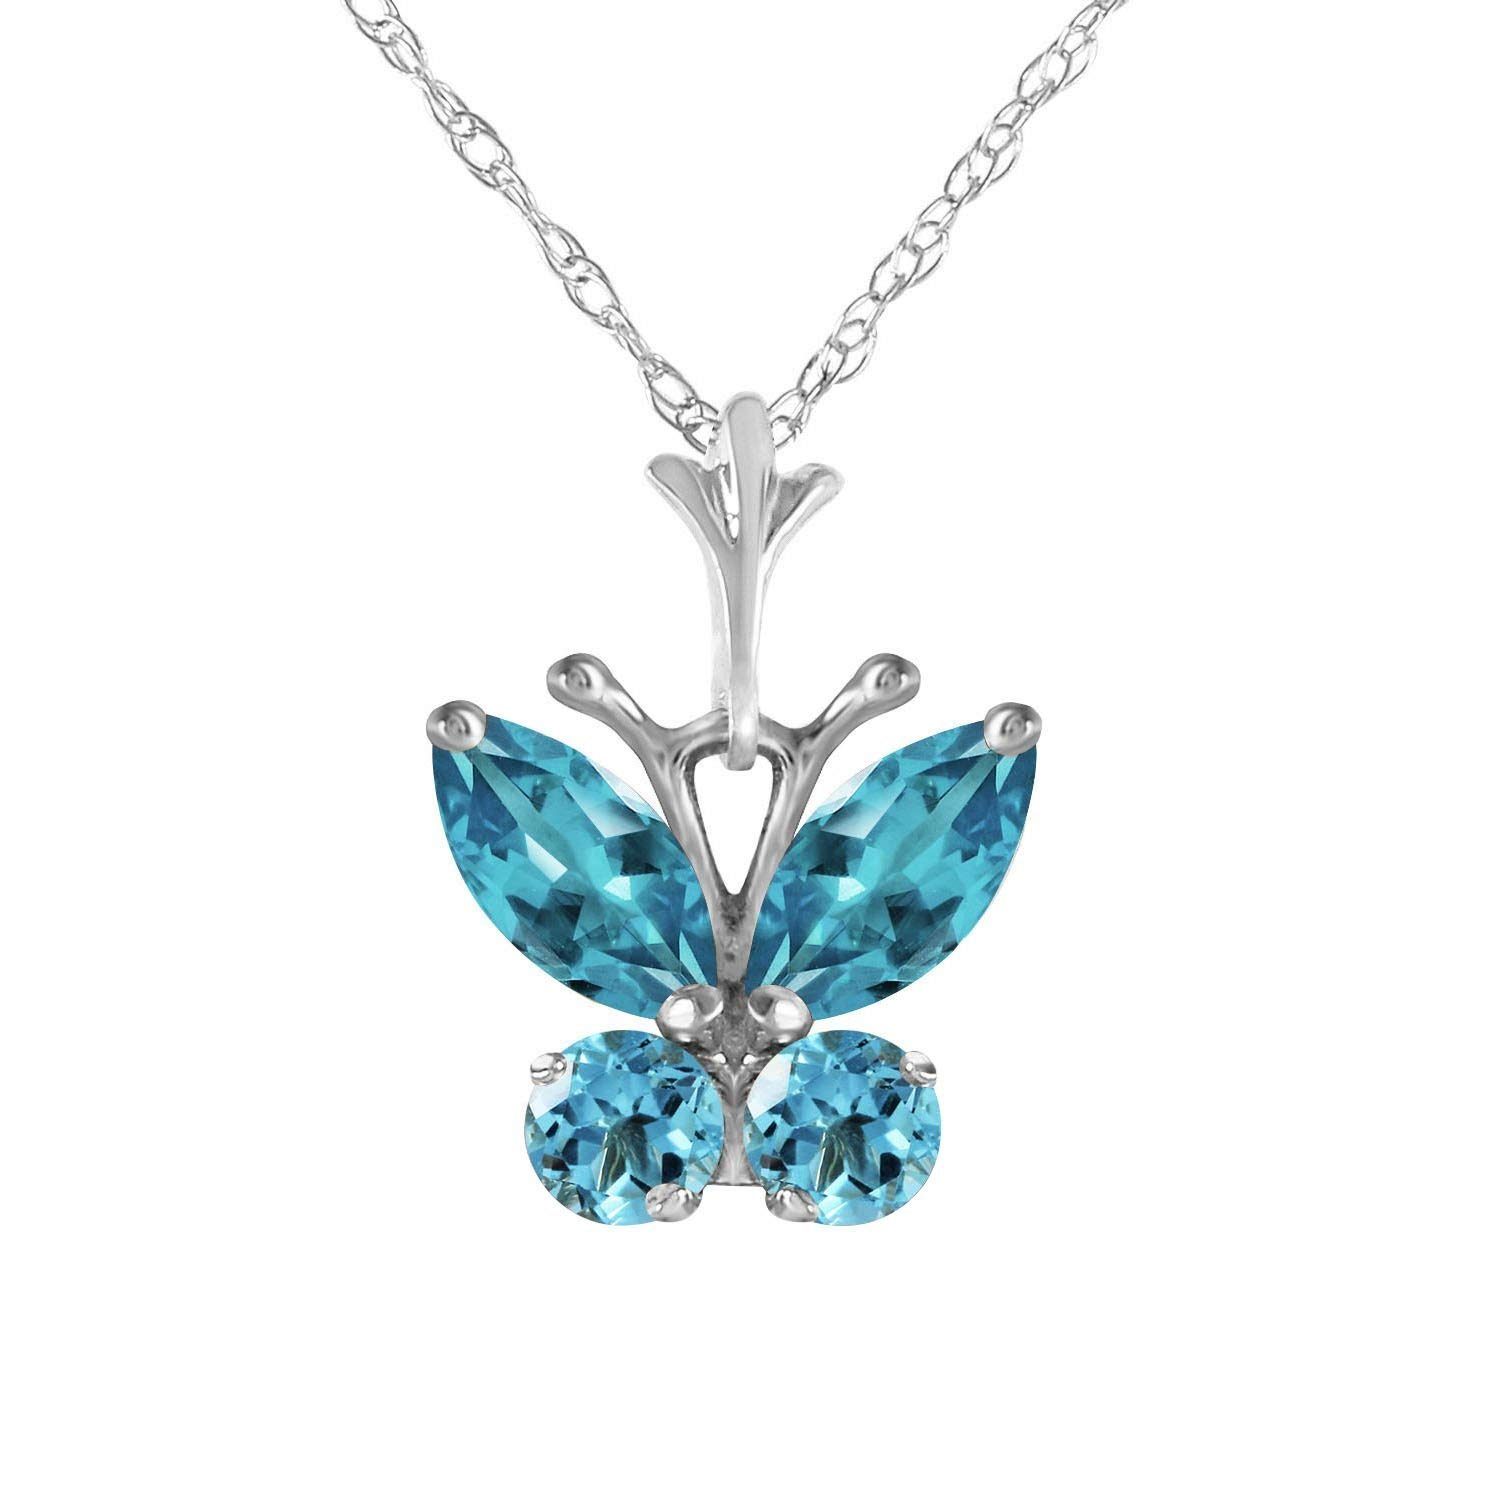 ALARRI 0.7 Carat 14K Solid Rose Gold Butterfly Necklace Opal Peridot with 22 Inch Chain Length